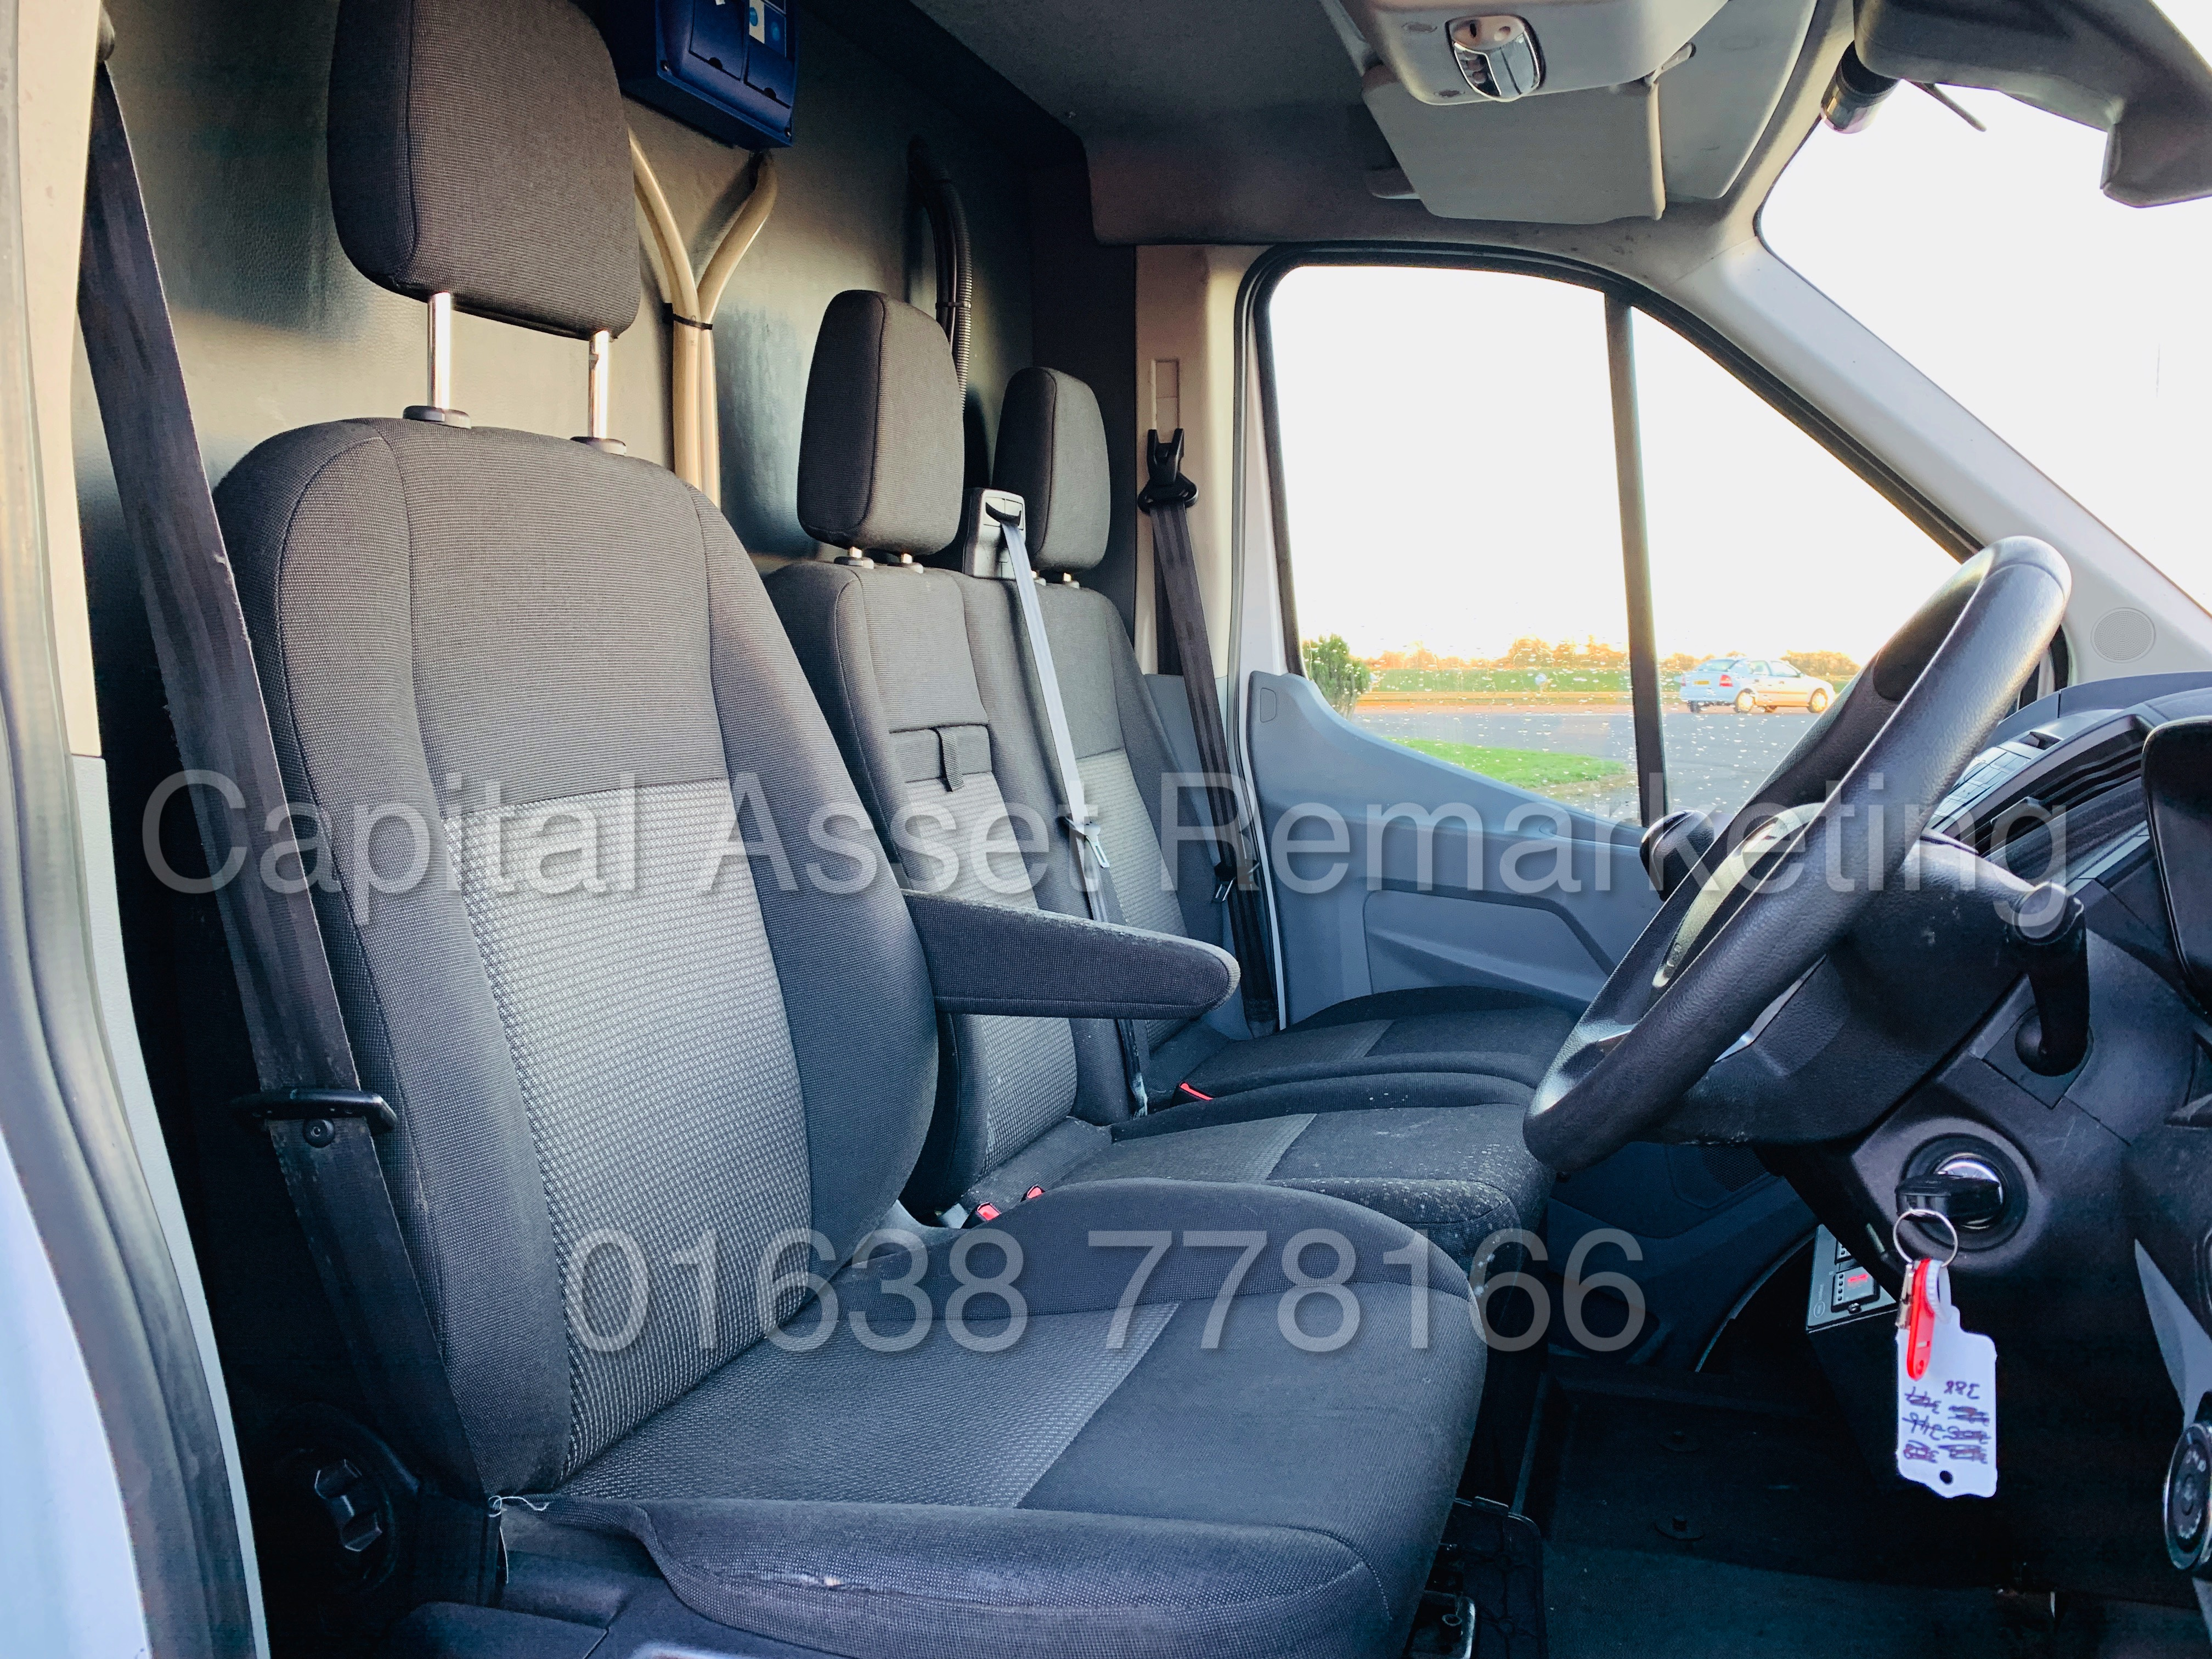 (On Sale) FORD TRANSIT T350 *LWB - REFRIGERATED VAN* (65 REG) '2.2 TDCI -125 BHP- 6 SPEED' (1 OWNER) - Image 26 of 43